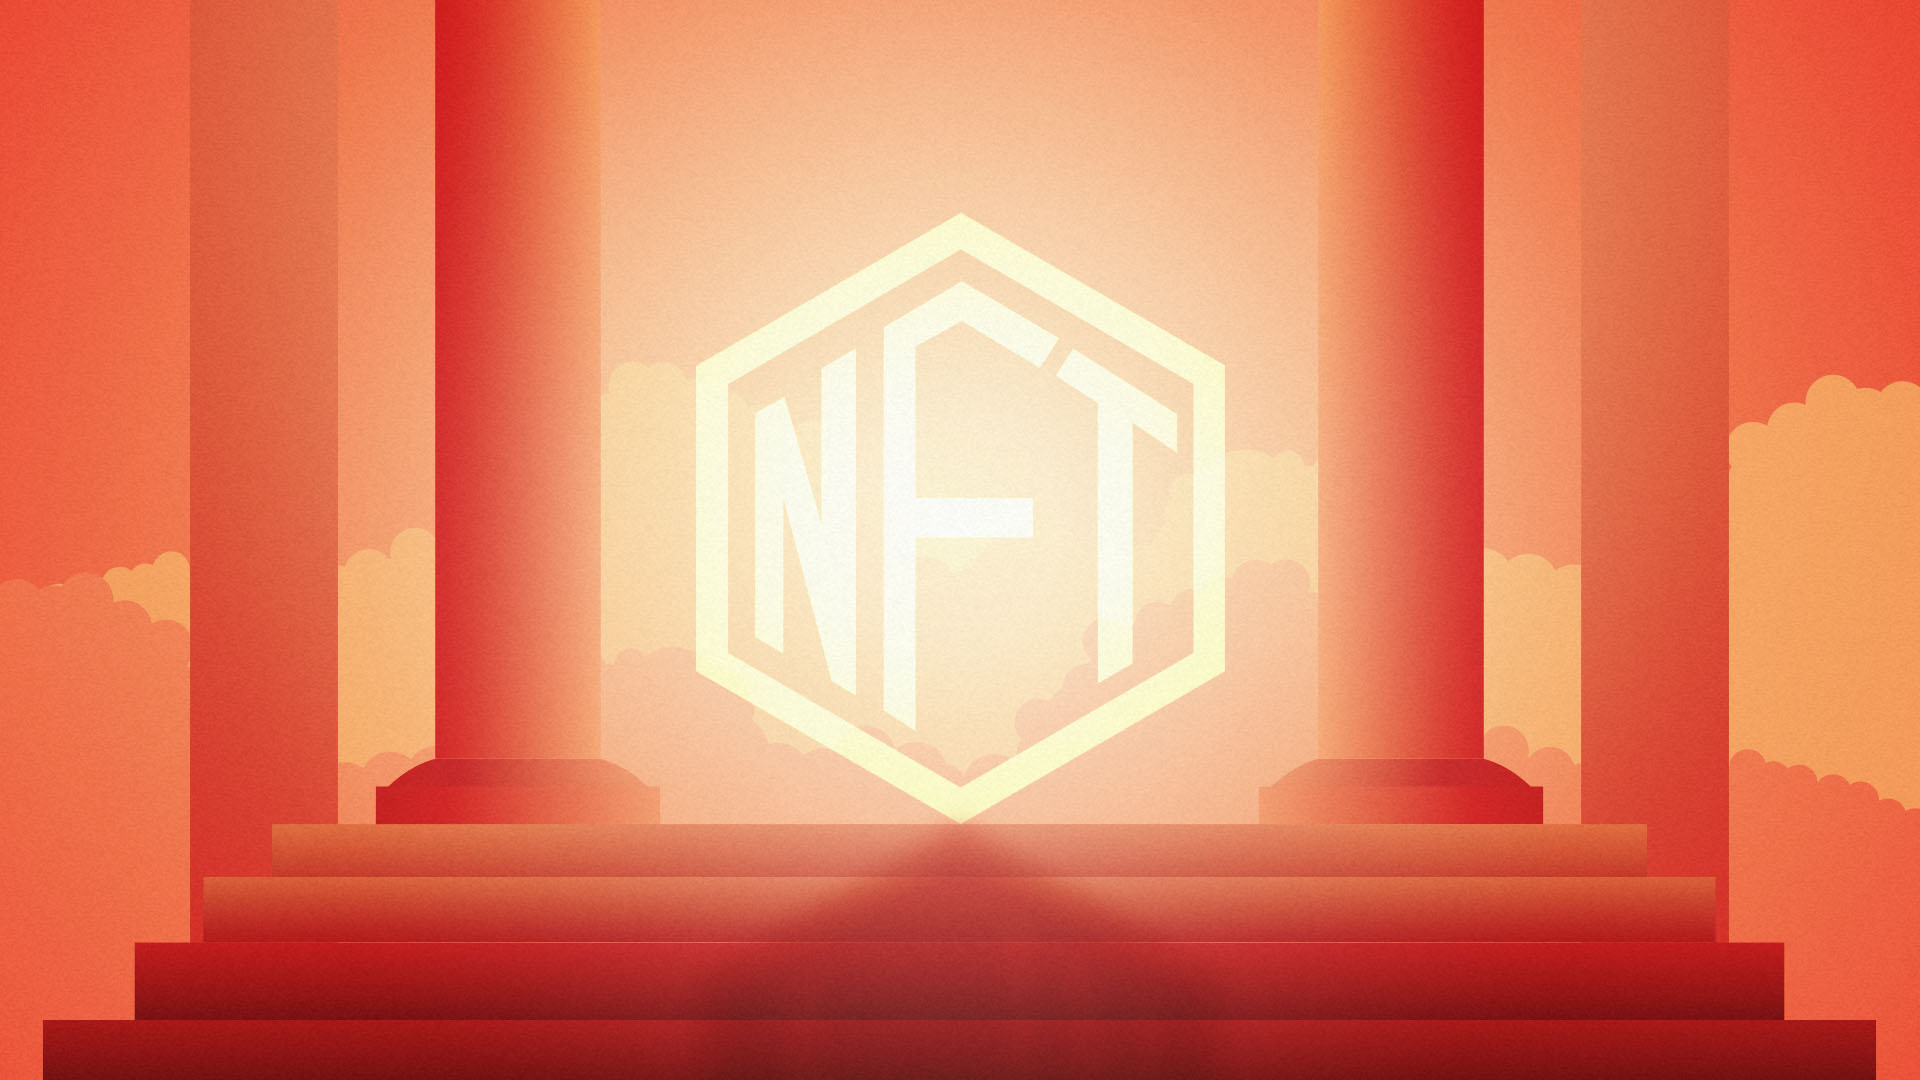 Fox, the broadcasting giant, has a new marketplace for NFTs and Dan Harmon is the first to jump on board.